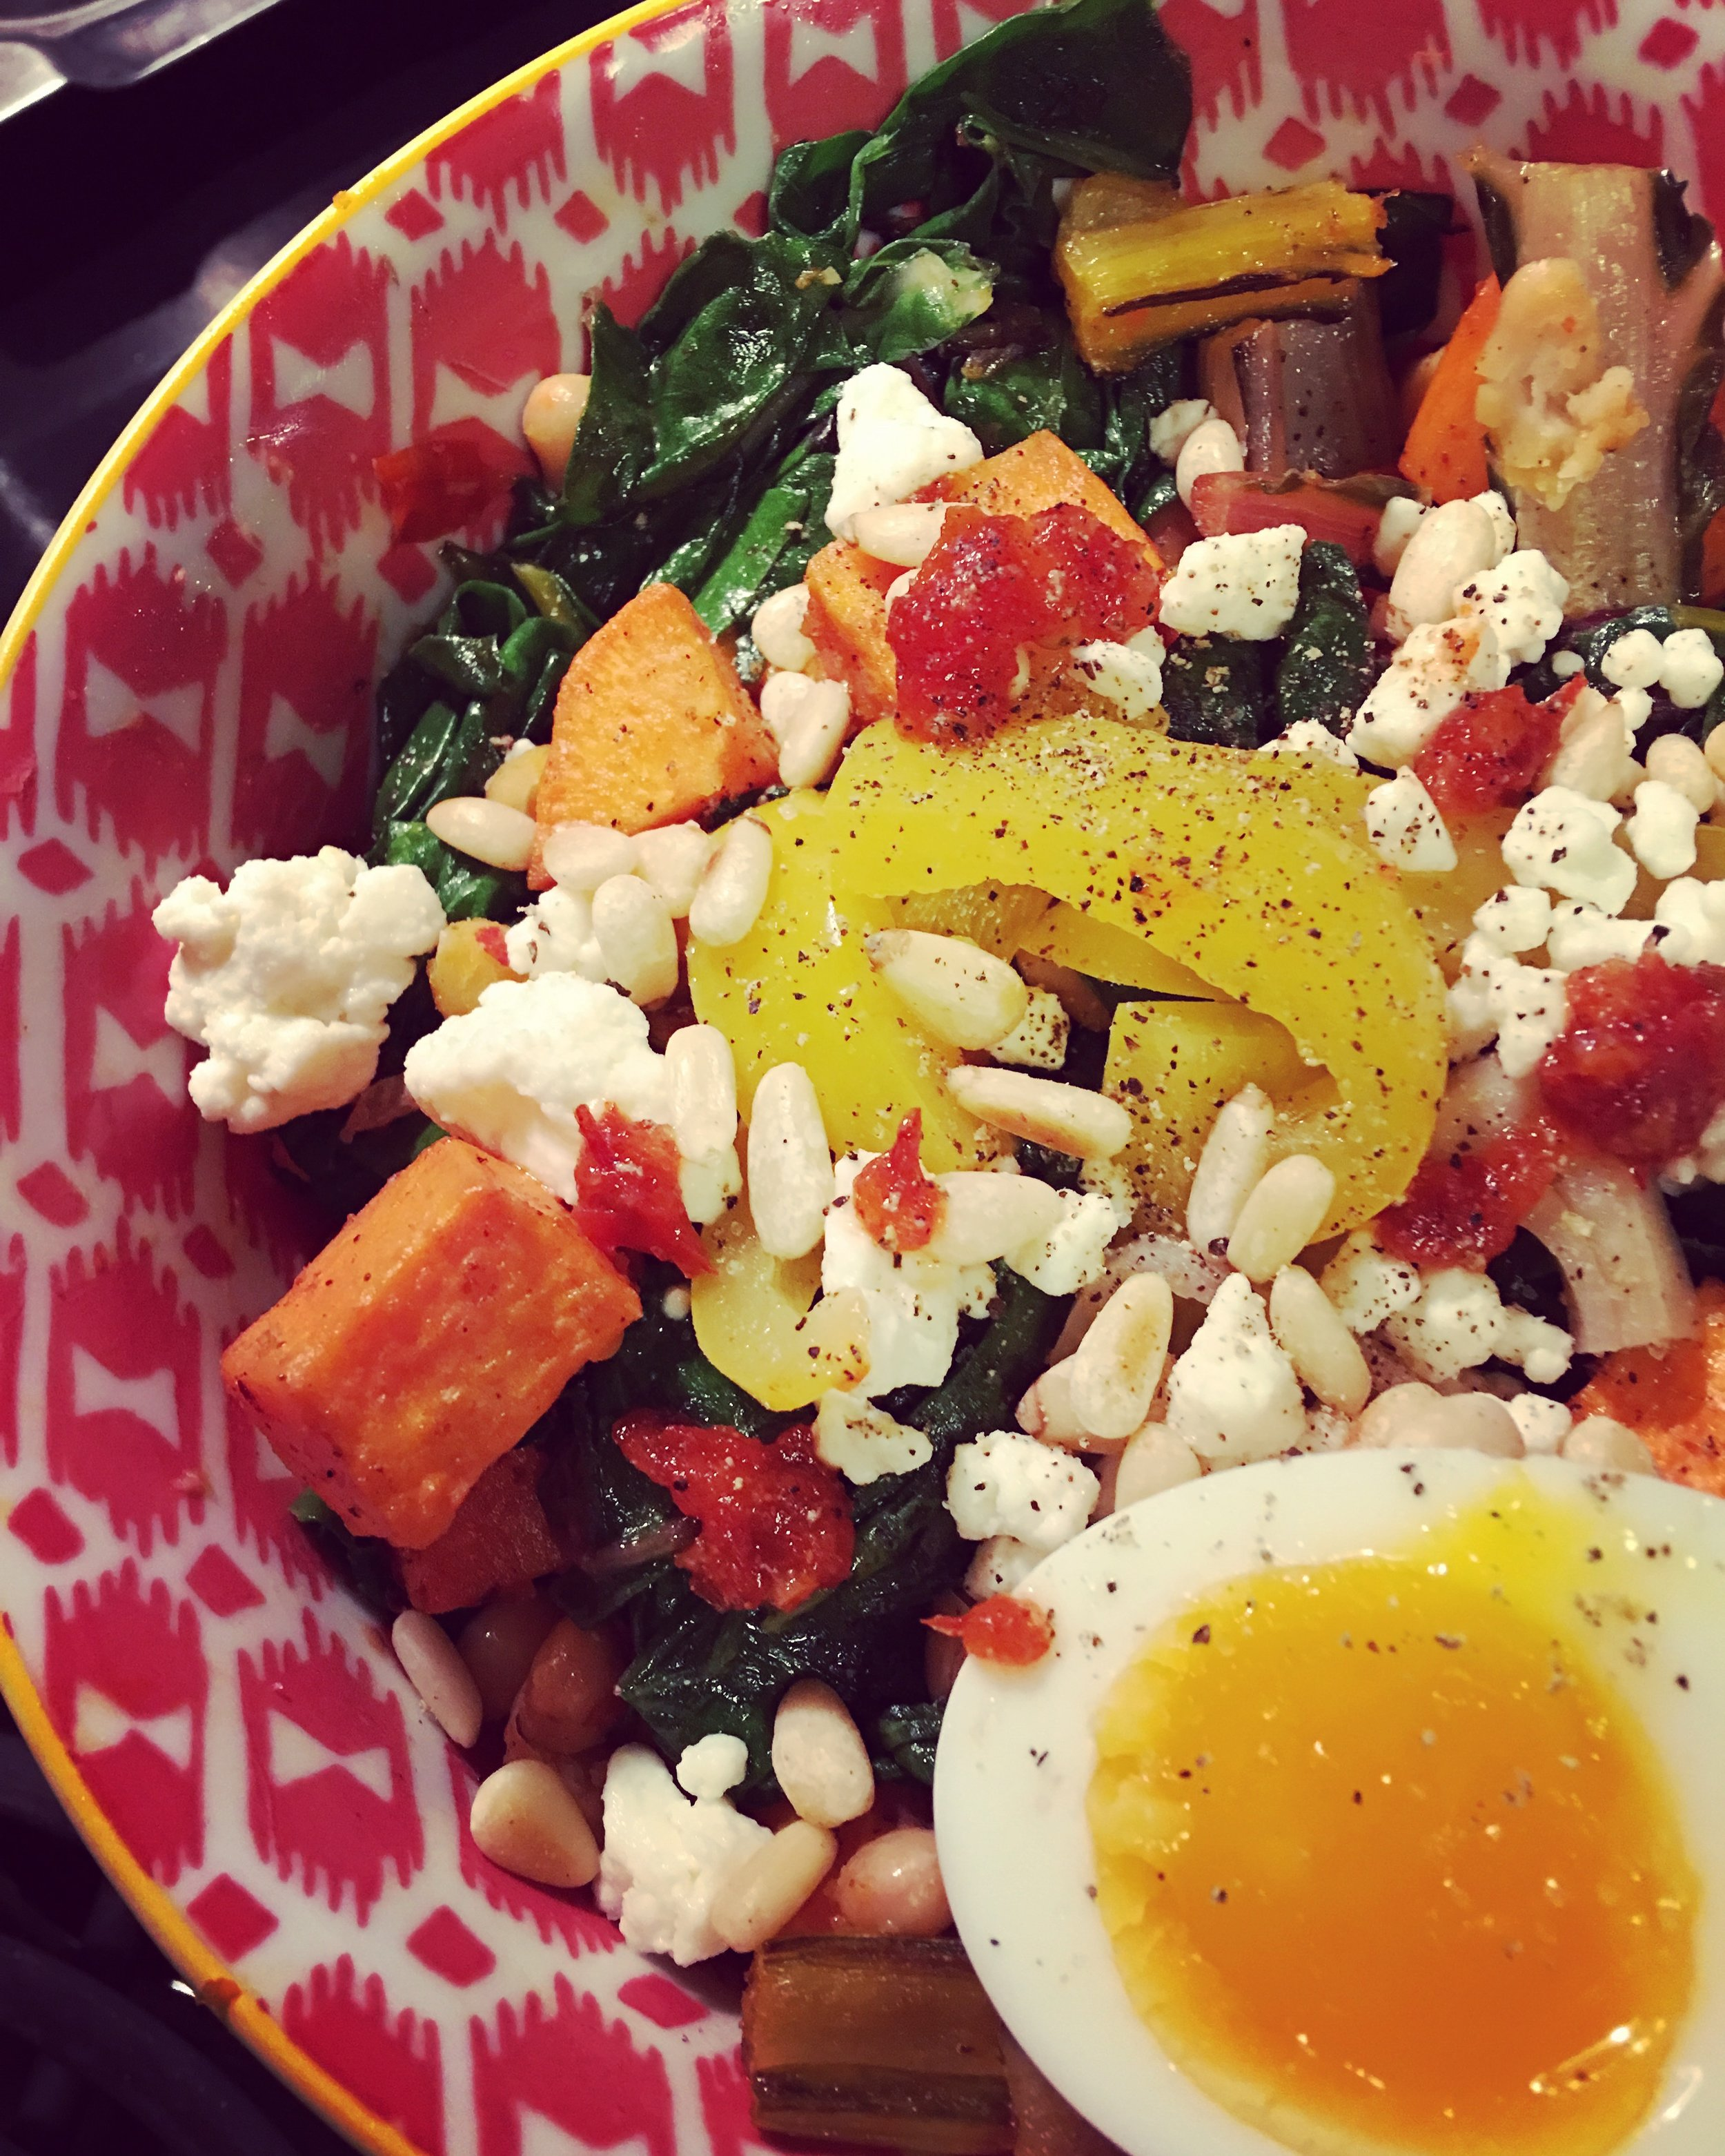 Berbere Veggies: Variation #2   With sweet potatoes, 7-minute eggs, stir-fried Swiss chard and chard stems, harissa, pine nuts, feta, and pickled bell peppers.